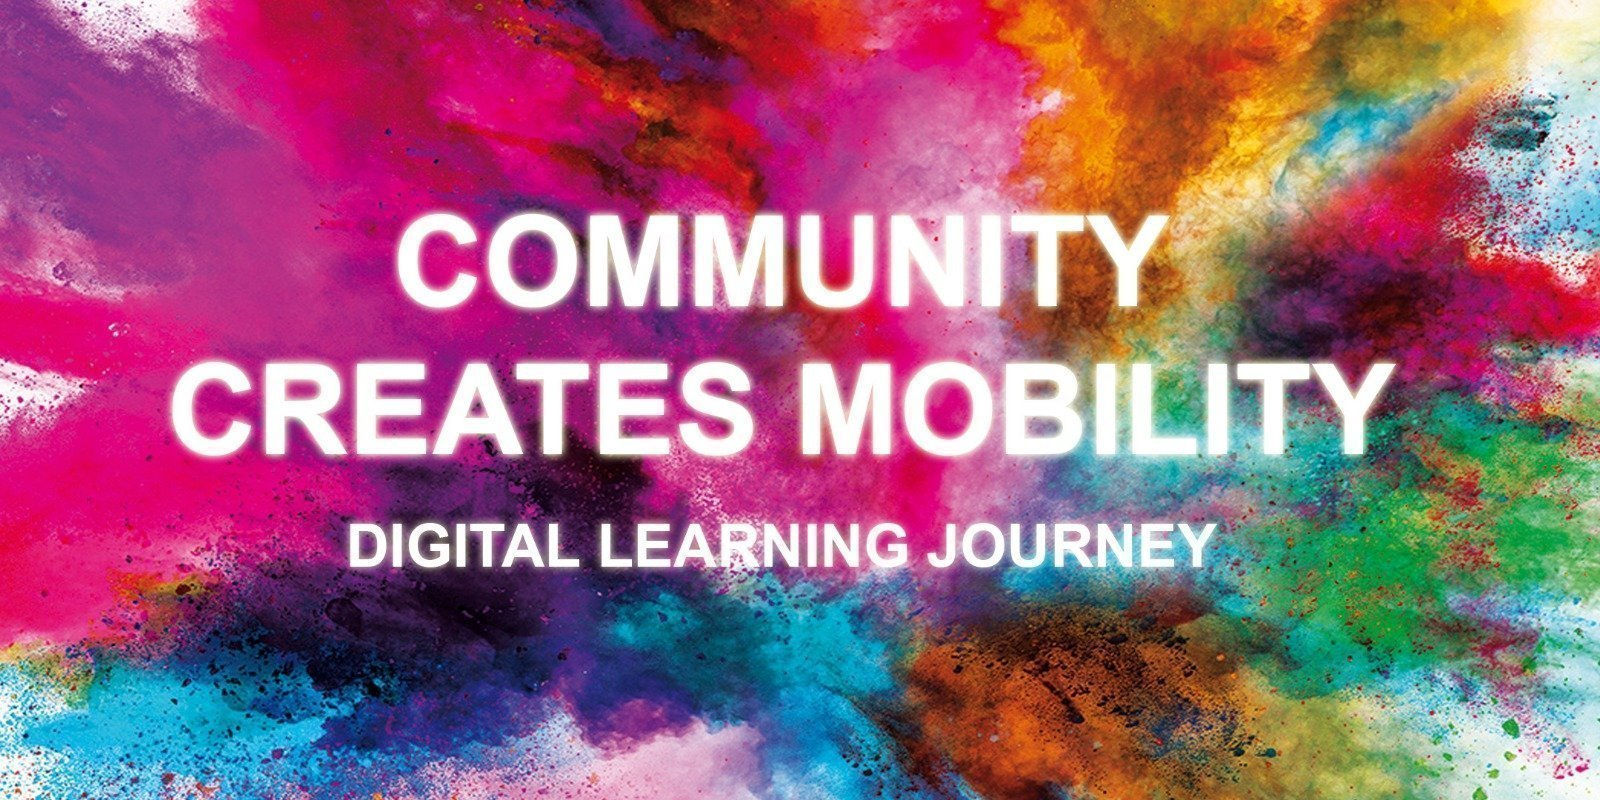 Community Creates Mobility - Digital Learning Journey Teil 3 12